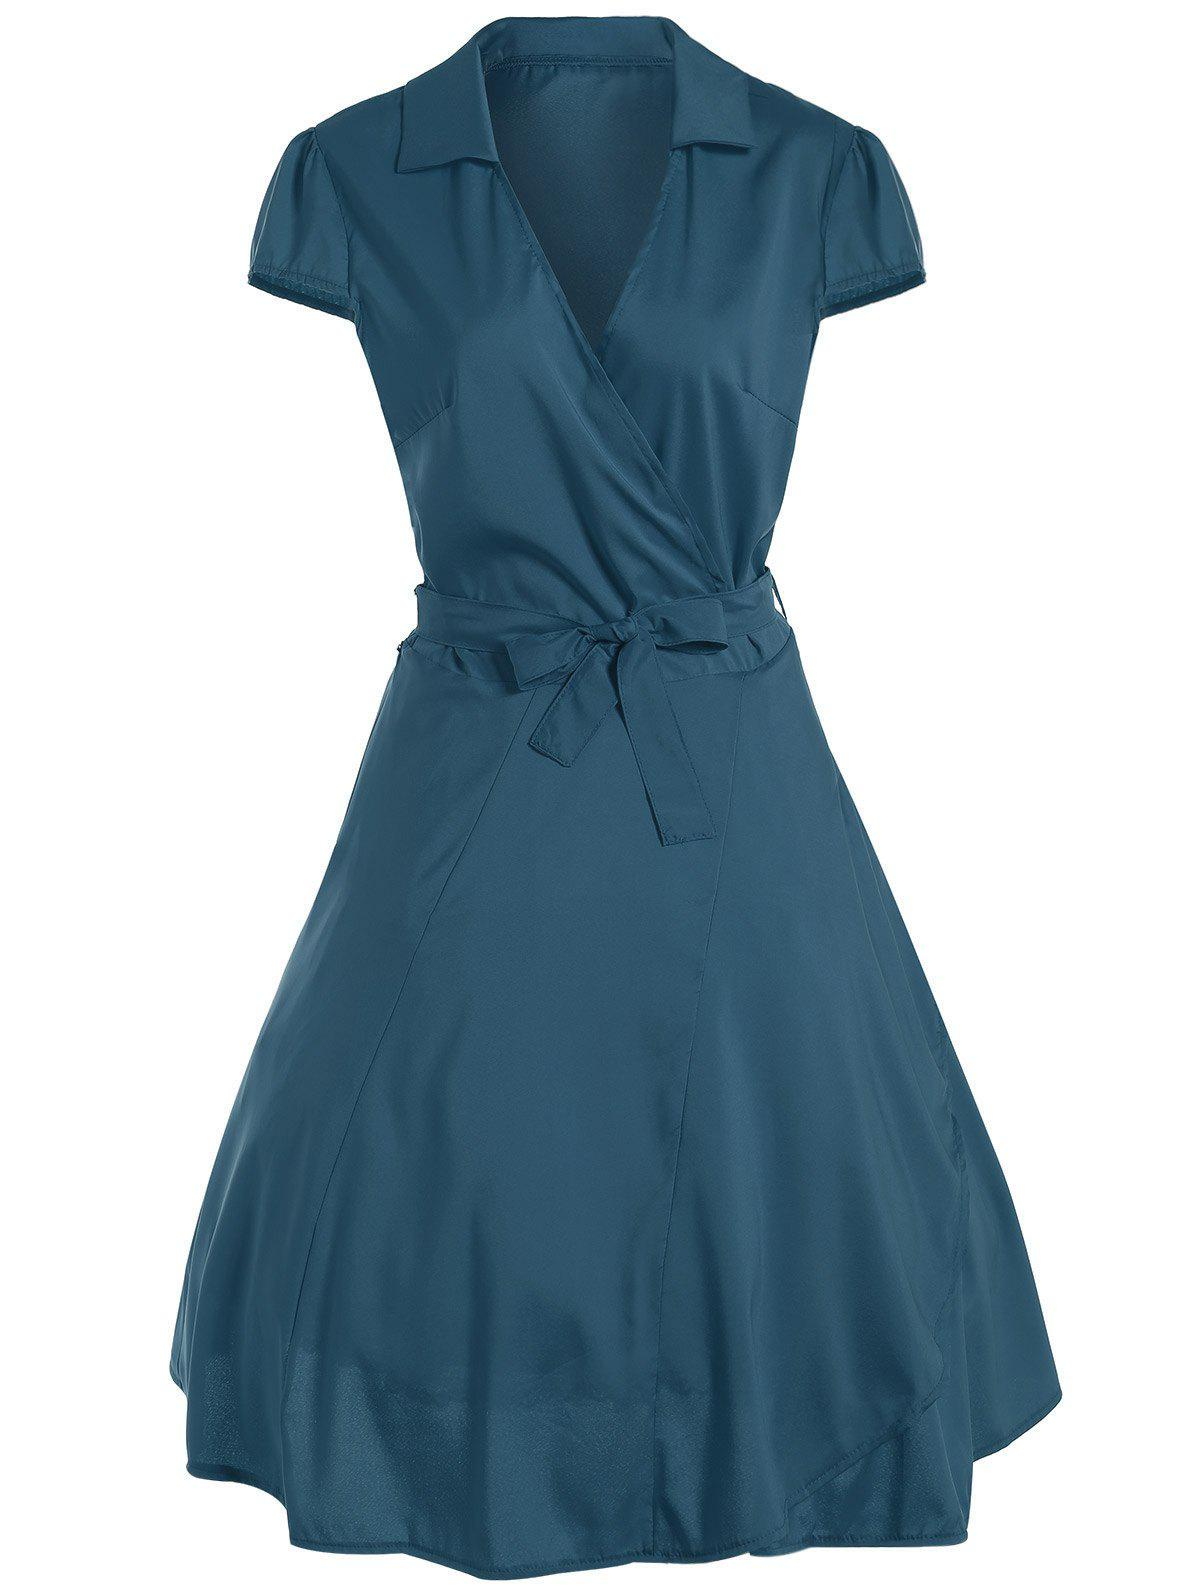 V Neck Tied Belt Surplice Skater DressWOMEN<br><br>Size: M; Color: TURQUOISE; Style: Vintage; Material: Cotton Blend,Polyester; Silhouette: A-Line; Dresses Length: Knee-Length; Neckline: V-Neck; Sleeve Length: Short Sleeves; Pattern Type: Solid; With Belt: Yes; Season: Fall,Spring,Summer; Weight: 0.261kg; Package Contents: 1 x Dress  1 x Belt;